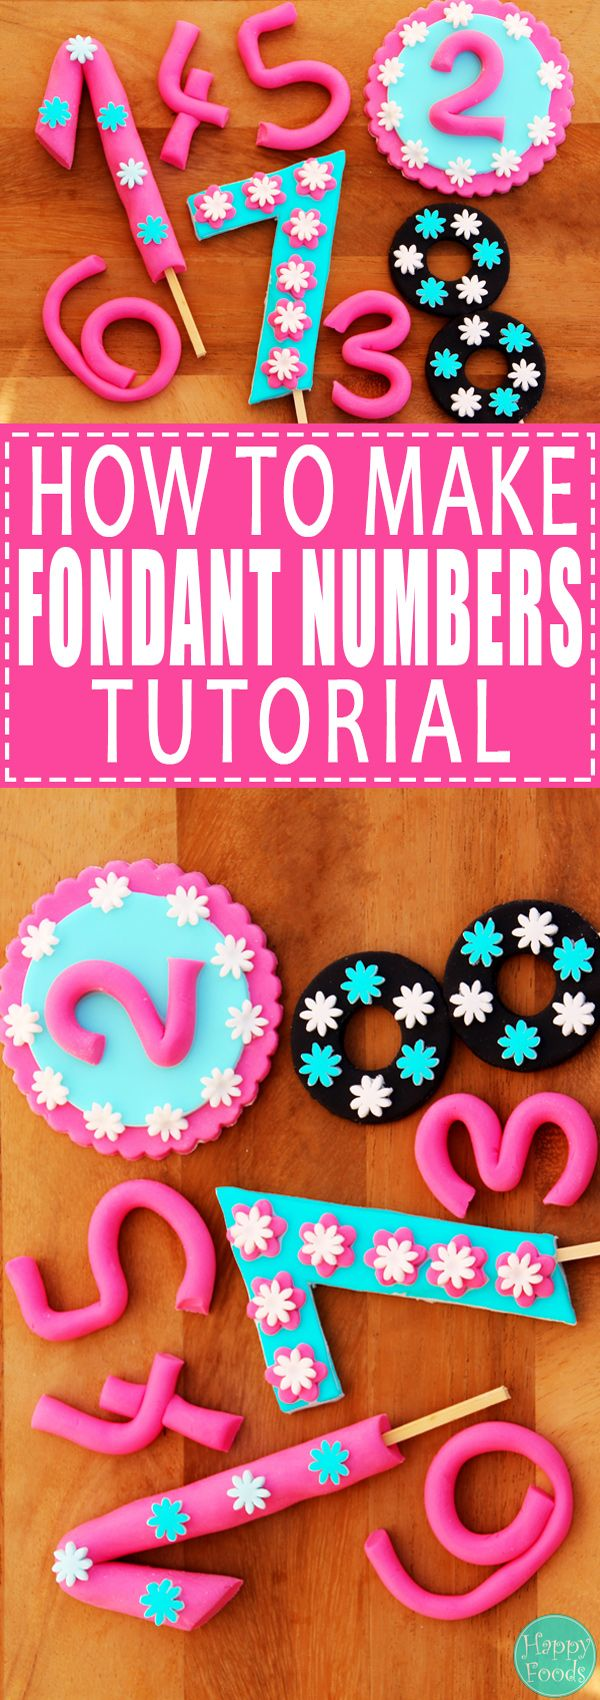 How to Make Fondant Numbers for Birthday Cake - Easy cake decorating tutorial…